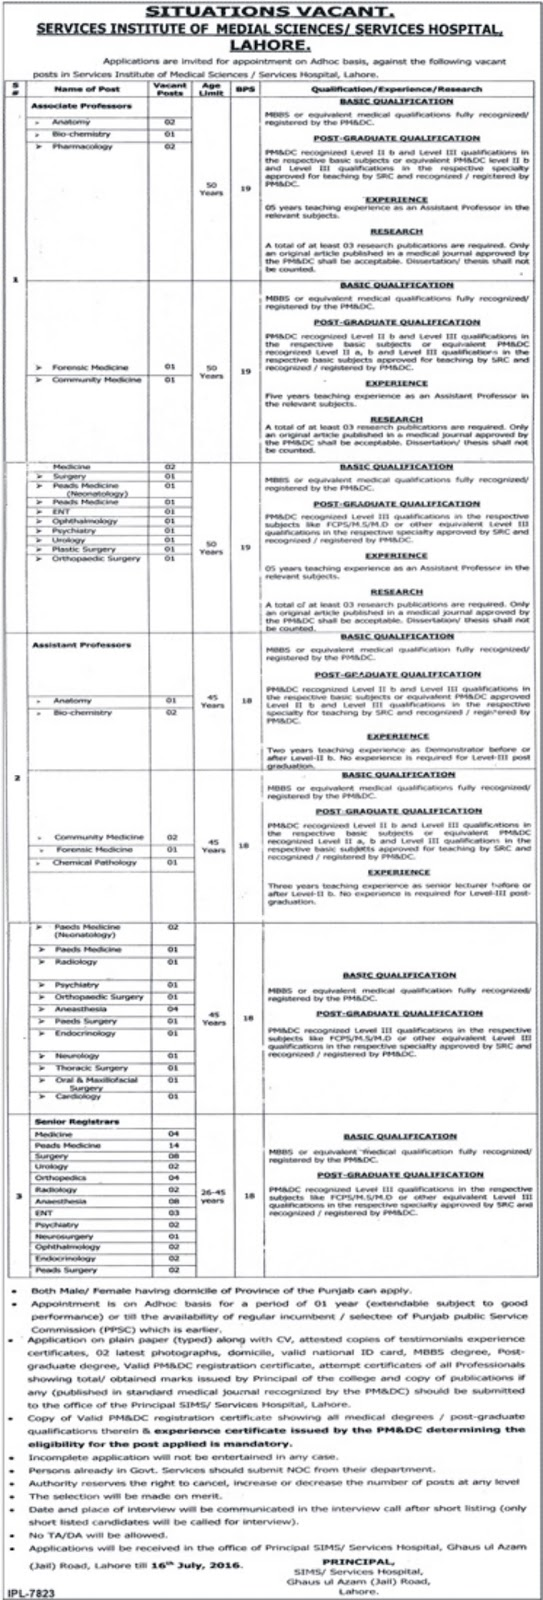 Assistant Professor and Senior Registrar Jobs in Services Hospital Lahore for MBBS Doctors